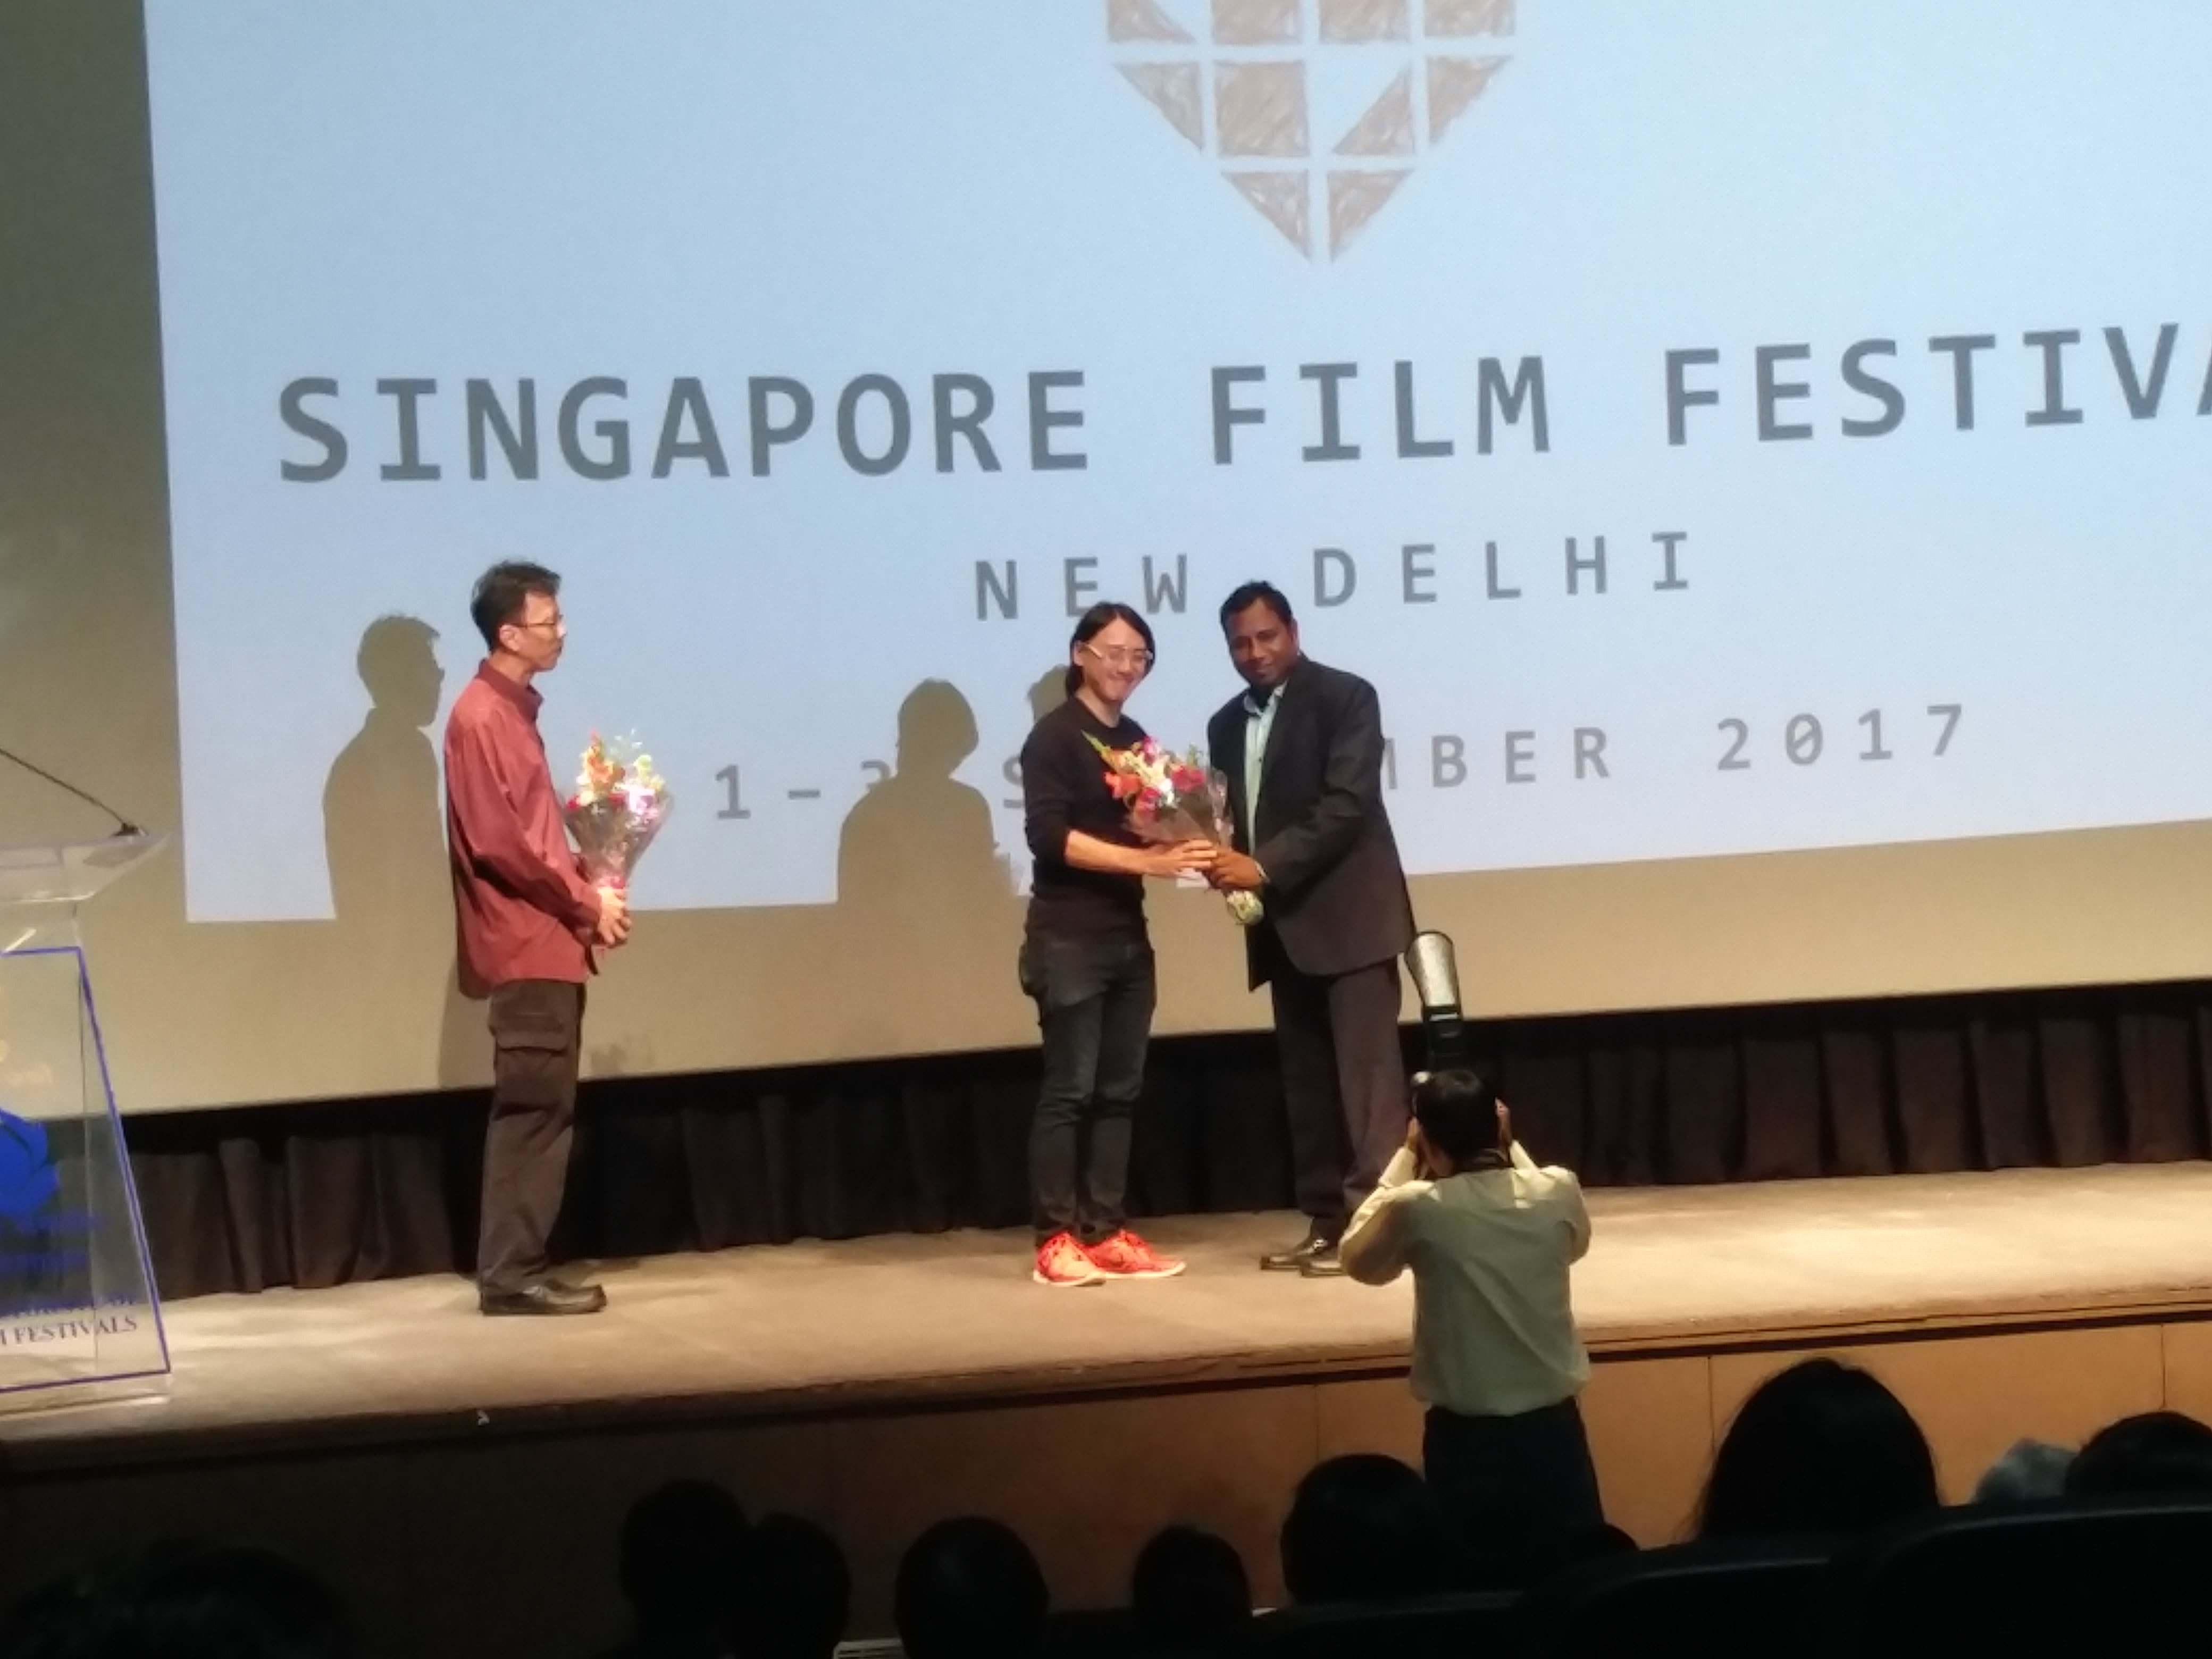 DFF director felicitating 'That Girl in a PInafore' director Yee Wei Chai, as music producer, Zennon Goh looks on.